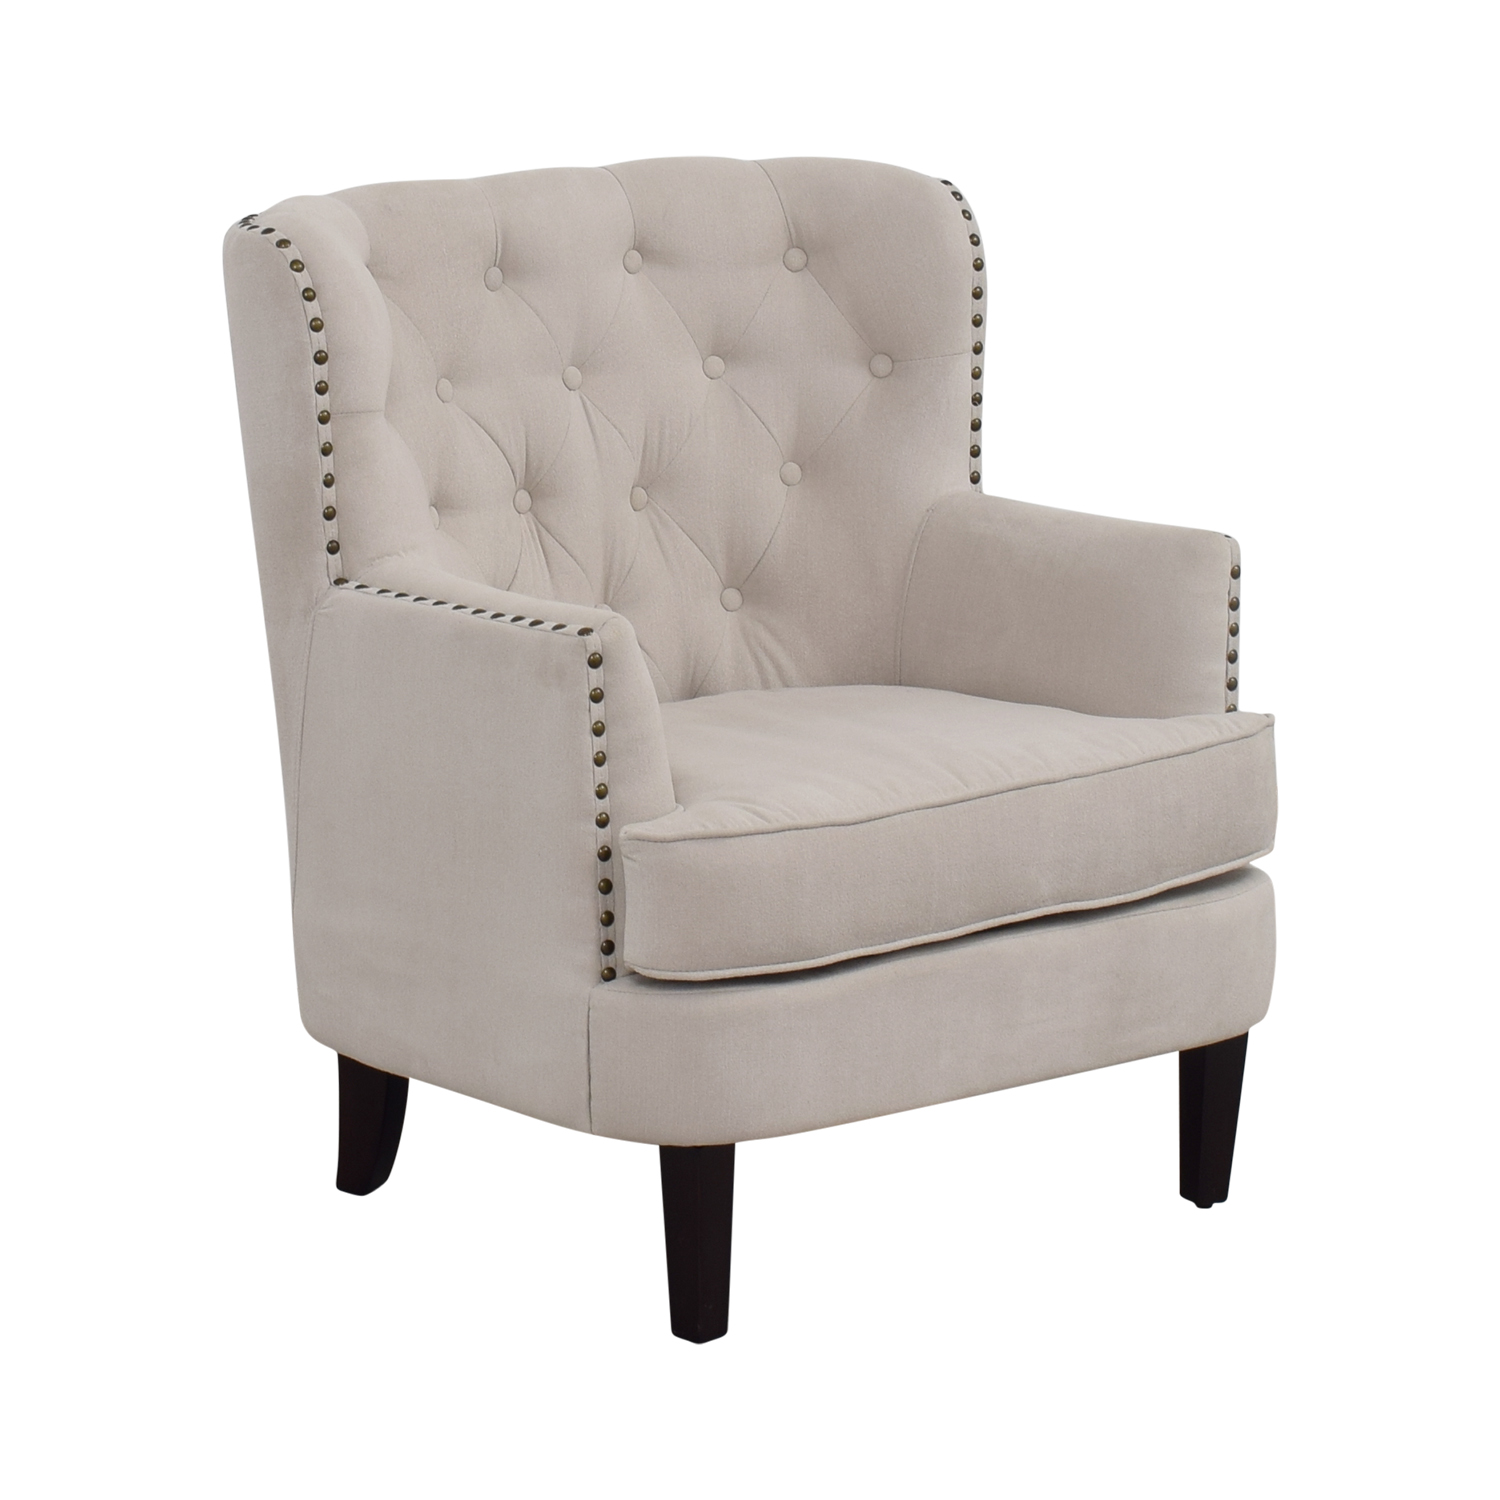 Used Wingback Chairs 55 Off West Elm West Elm Chrisanna Beige Tufted